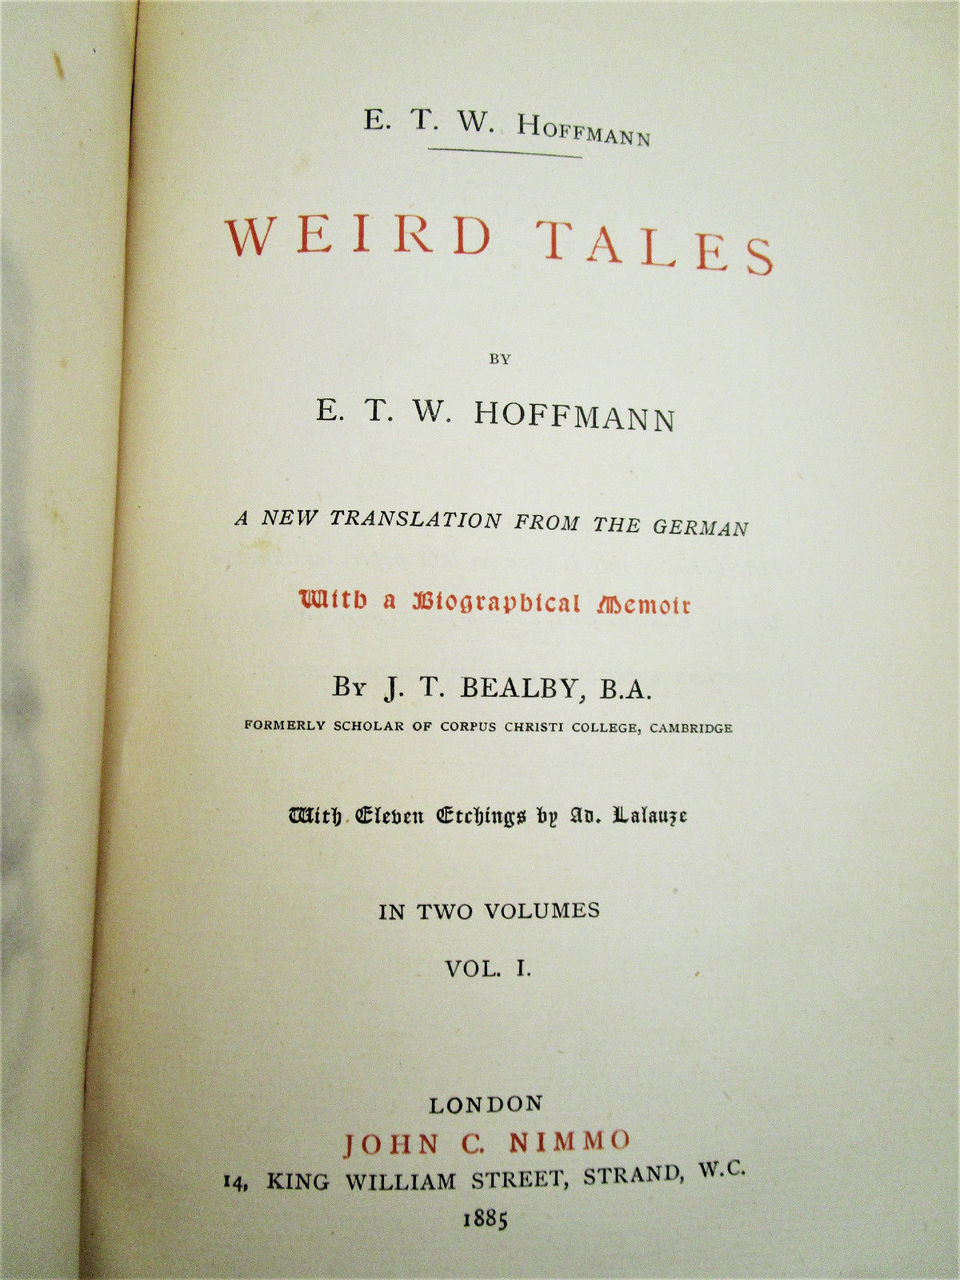 WEIRD TALES, by E.T.W. Hoffmann; A. Lalauze - 1885 [Ltd Ed w/Etchings]